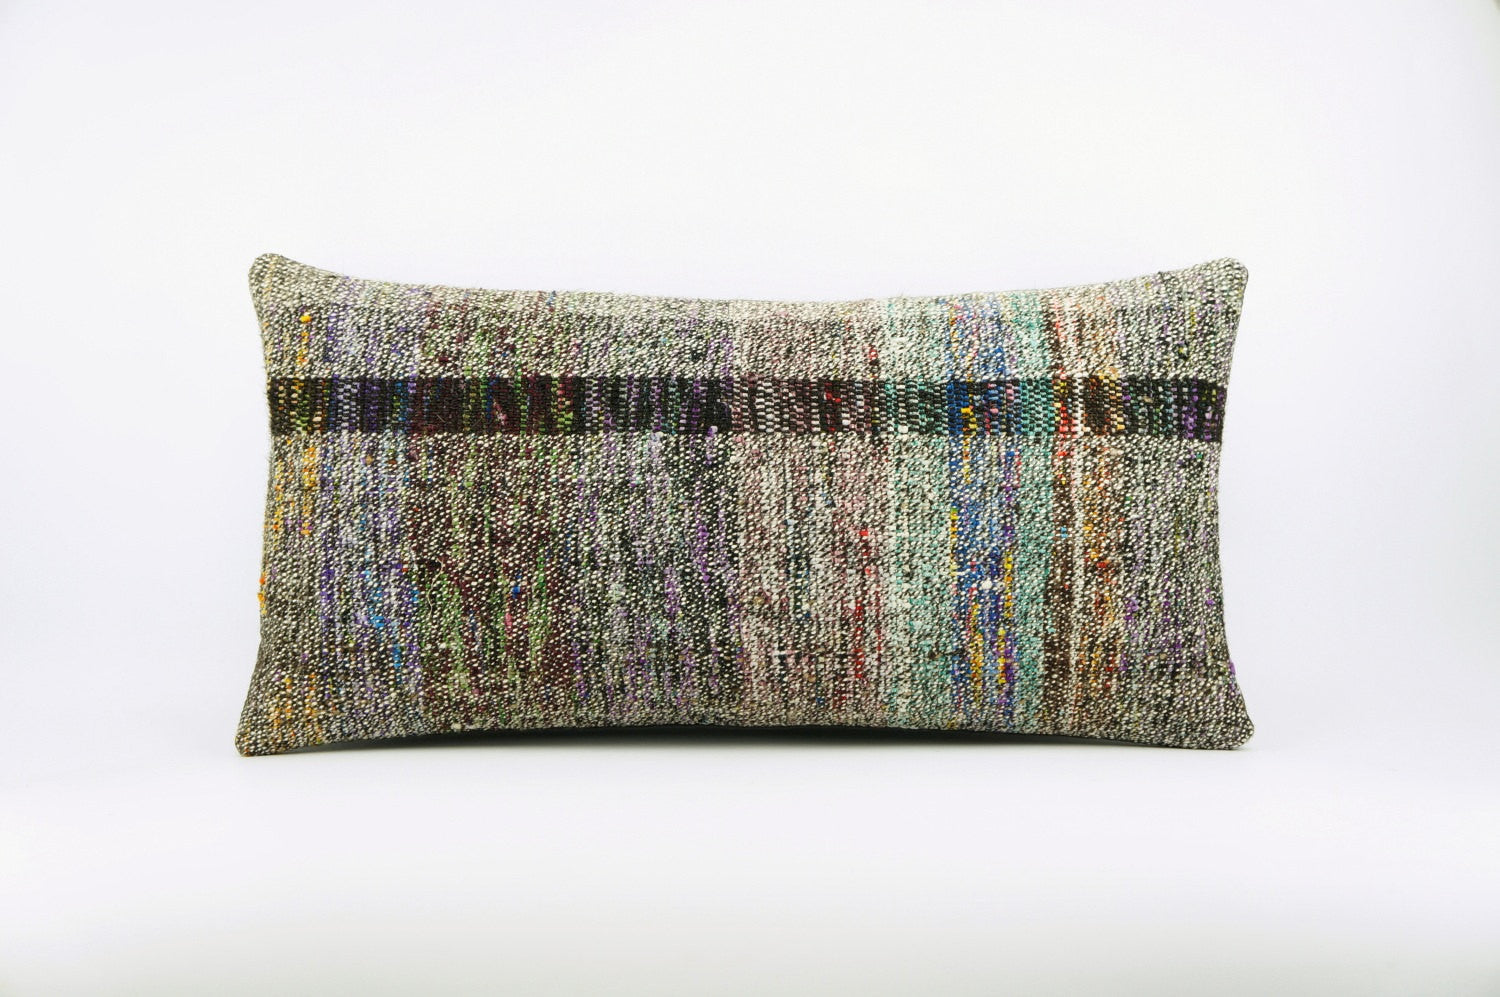 12x24  Hand Woven wool colourfull  multi colour striped decorative outdoor  Kilim Pillow cushion 1671 - kilimpillowstore  - 1